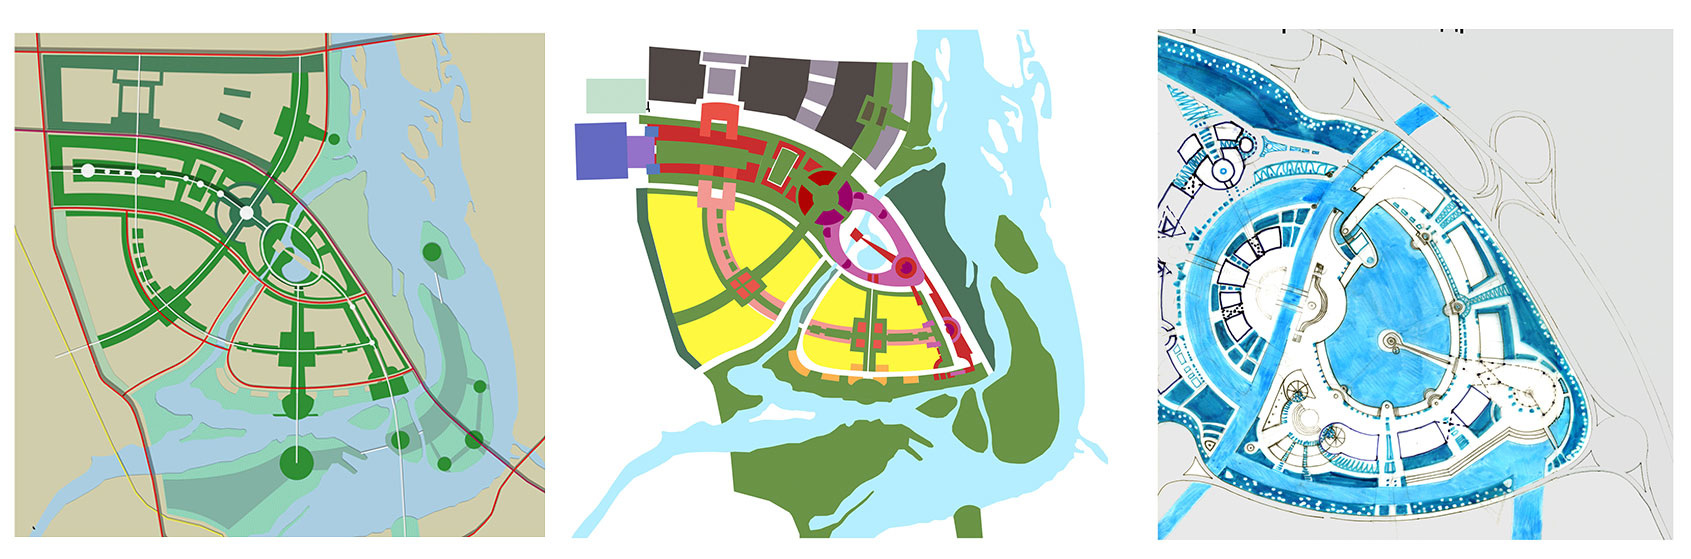 Urban planning concept of new business district - Natalia